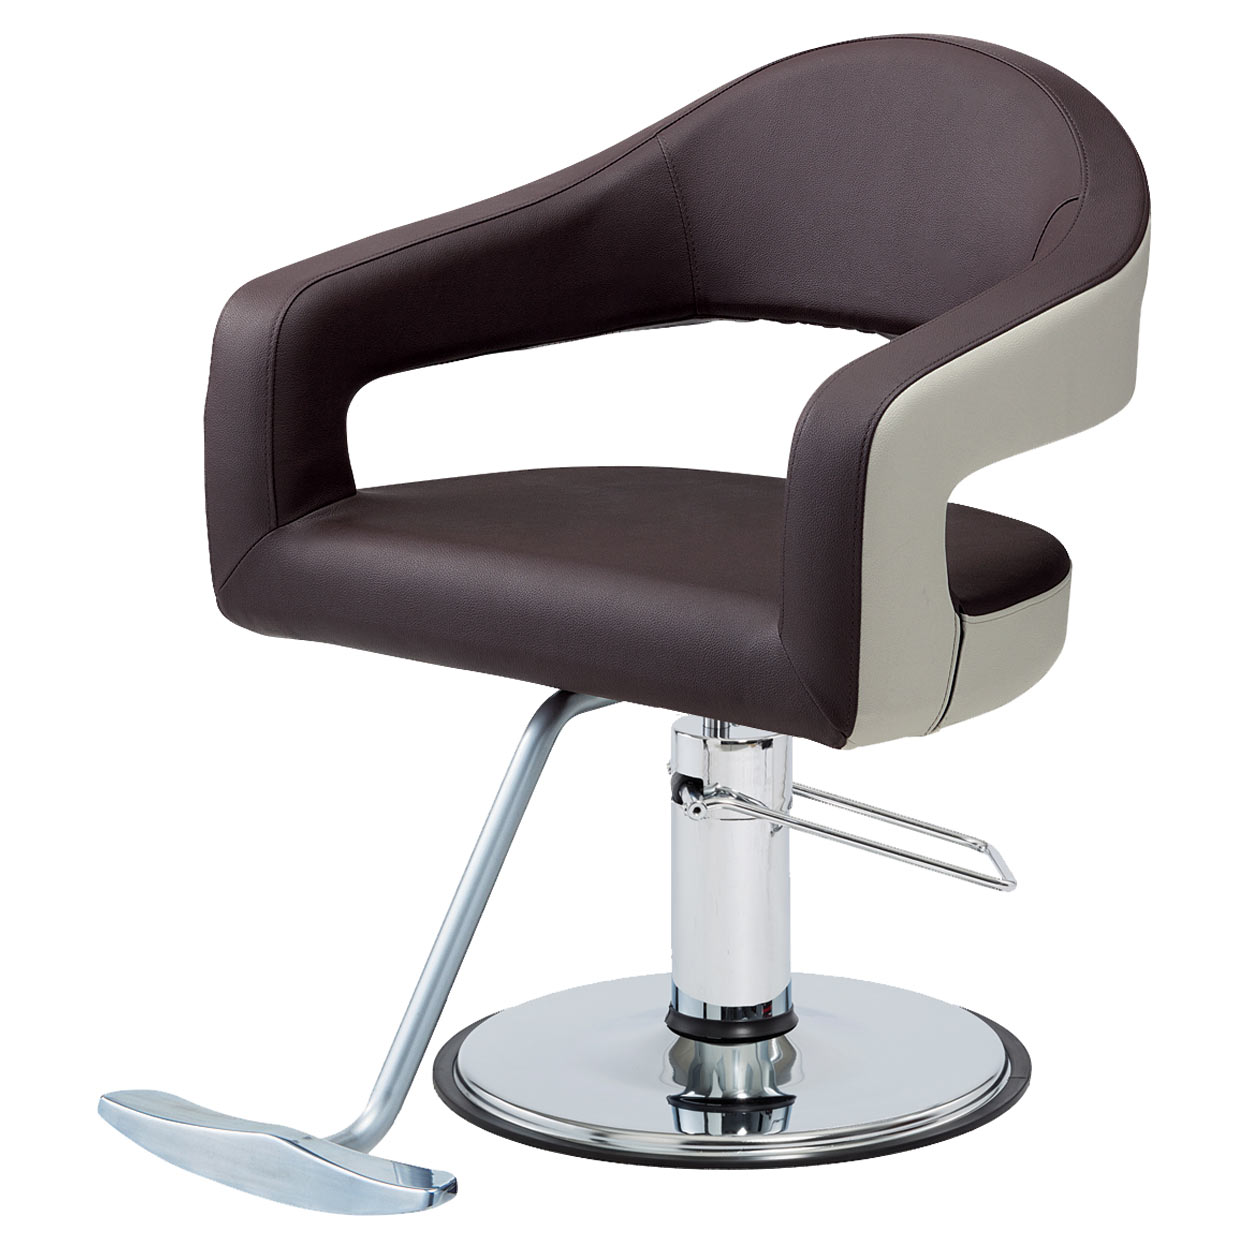 Takara Belmont Knoll Salon Styling Chair alternative product image 6